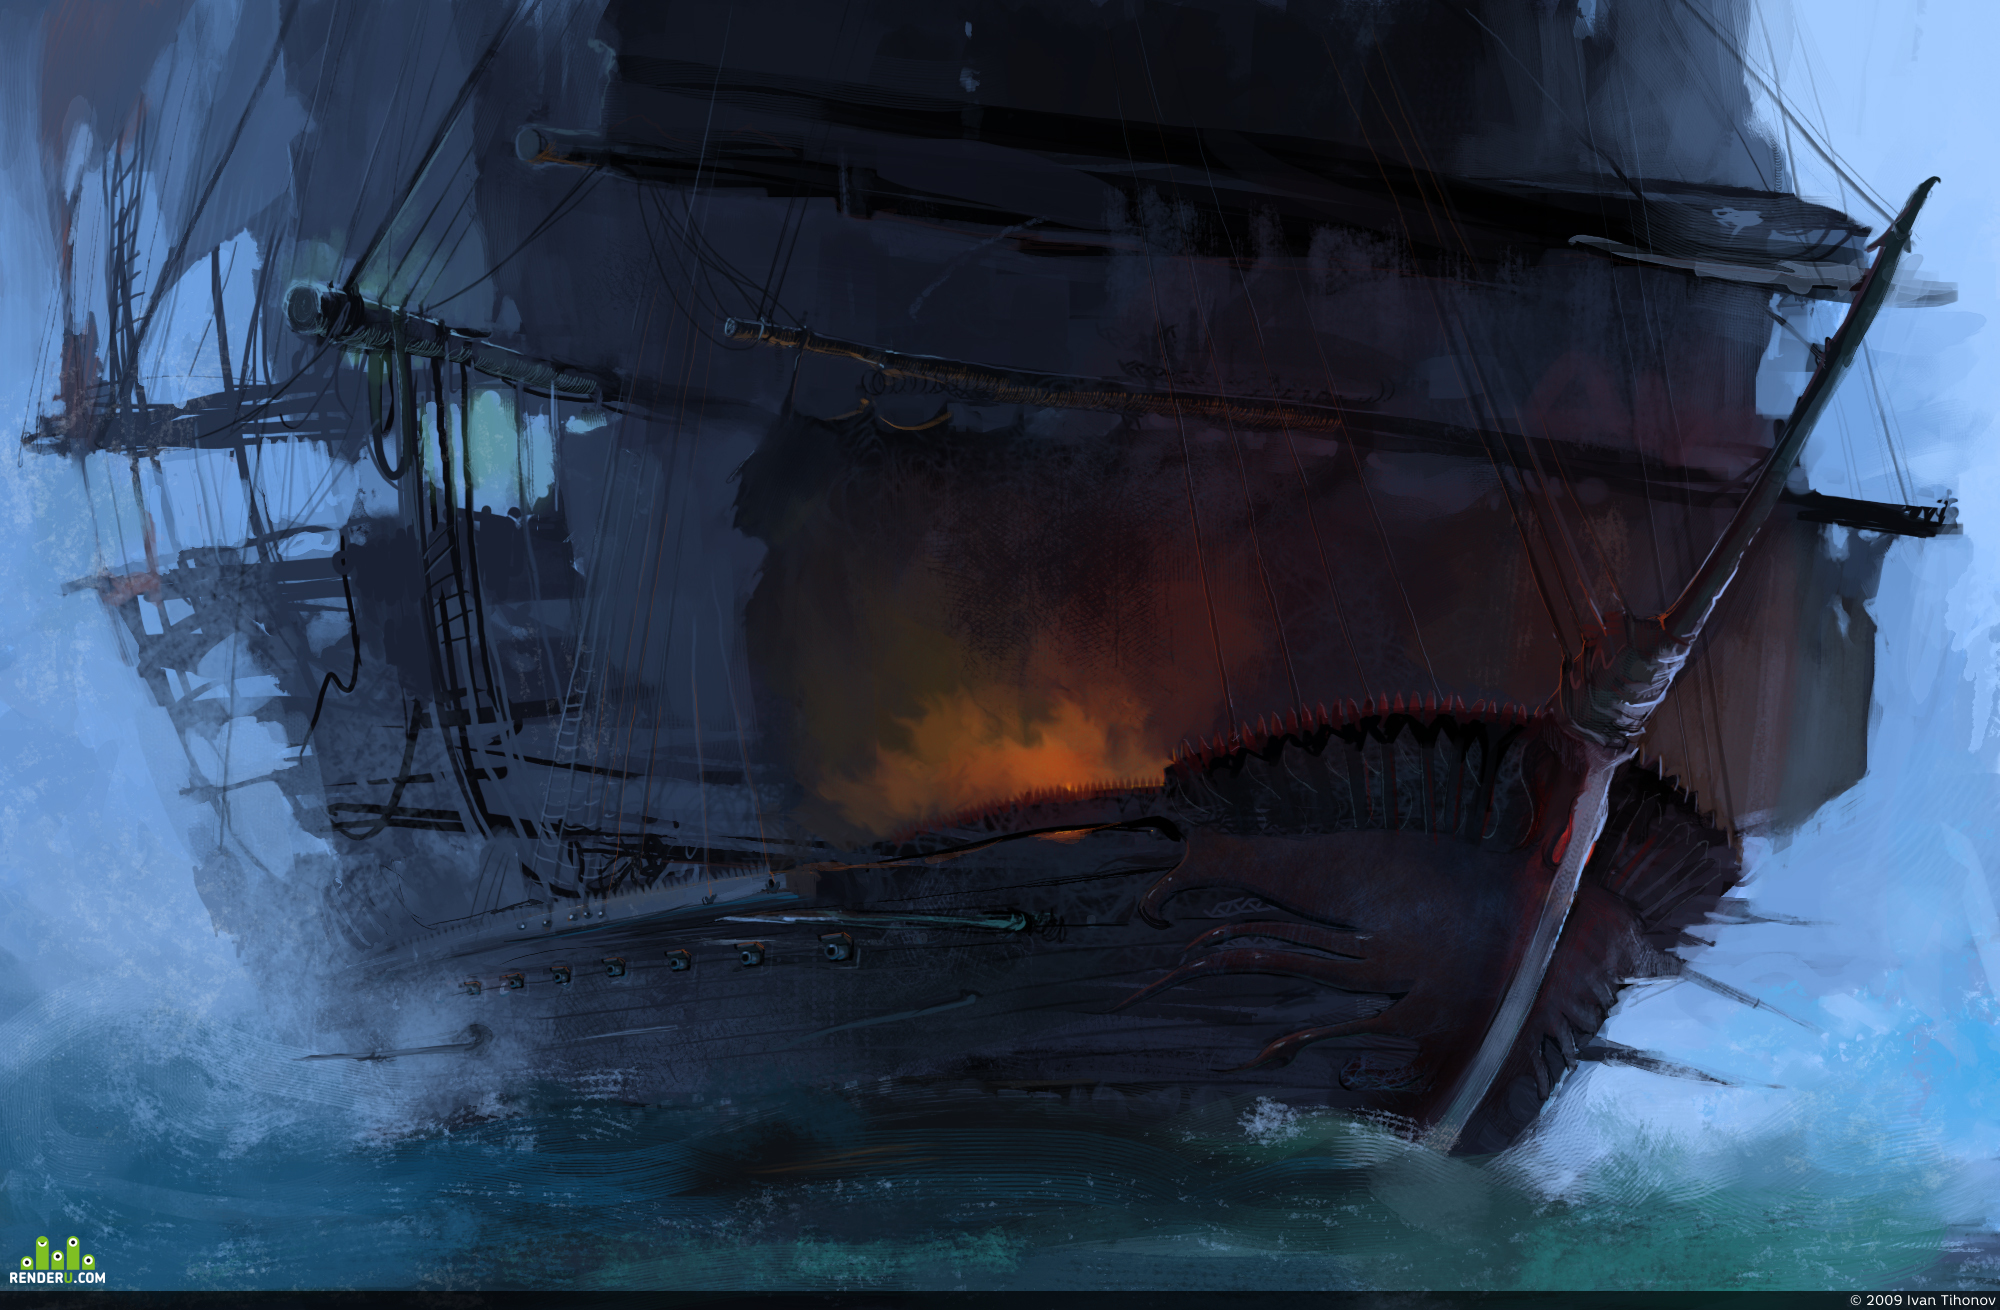 preview The mysterious piracy ship